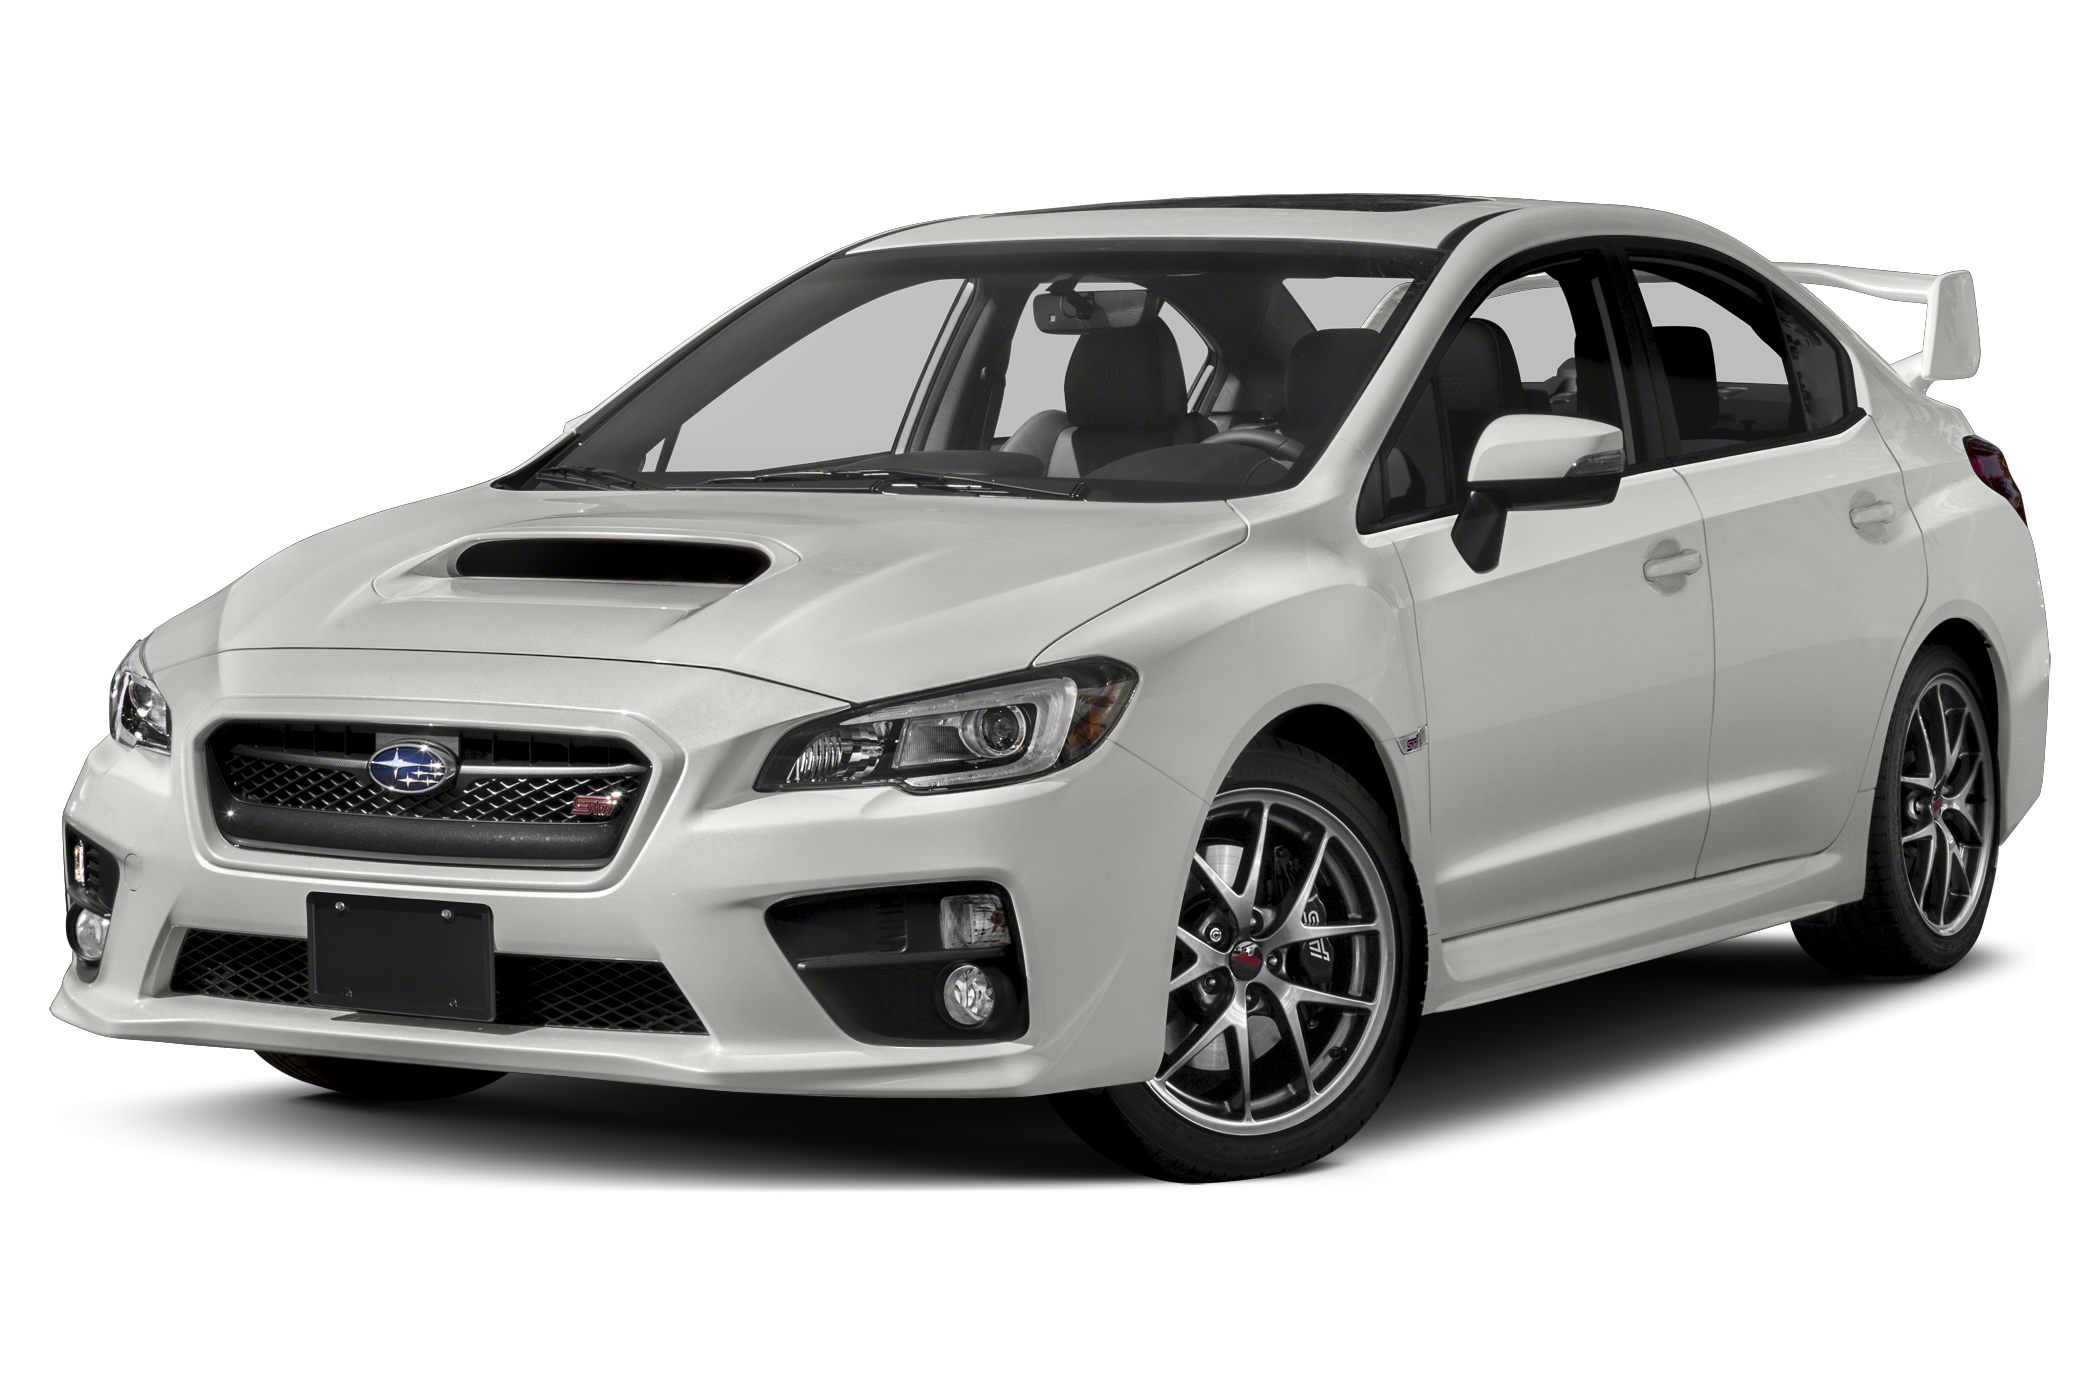 2016 Subaru Wrx Sti Limited W Wing 4dr All Wheel Drive Sedan Specs And Prices